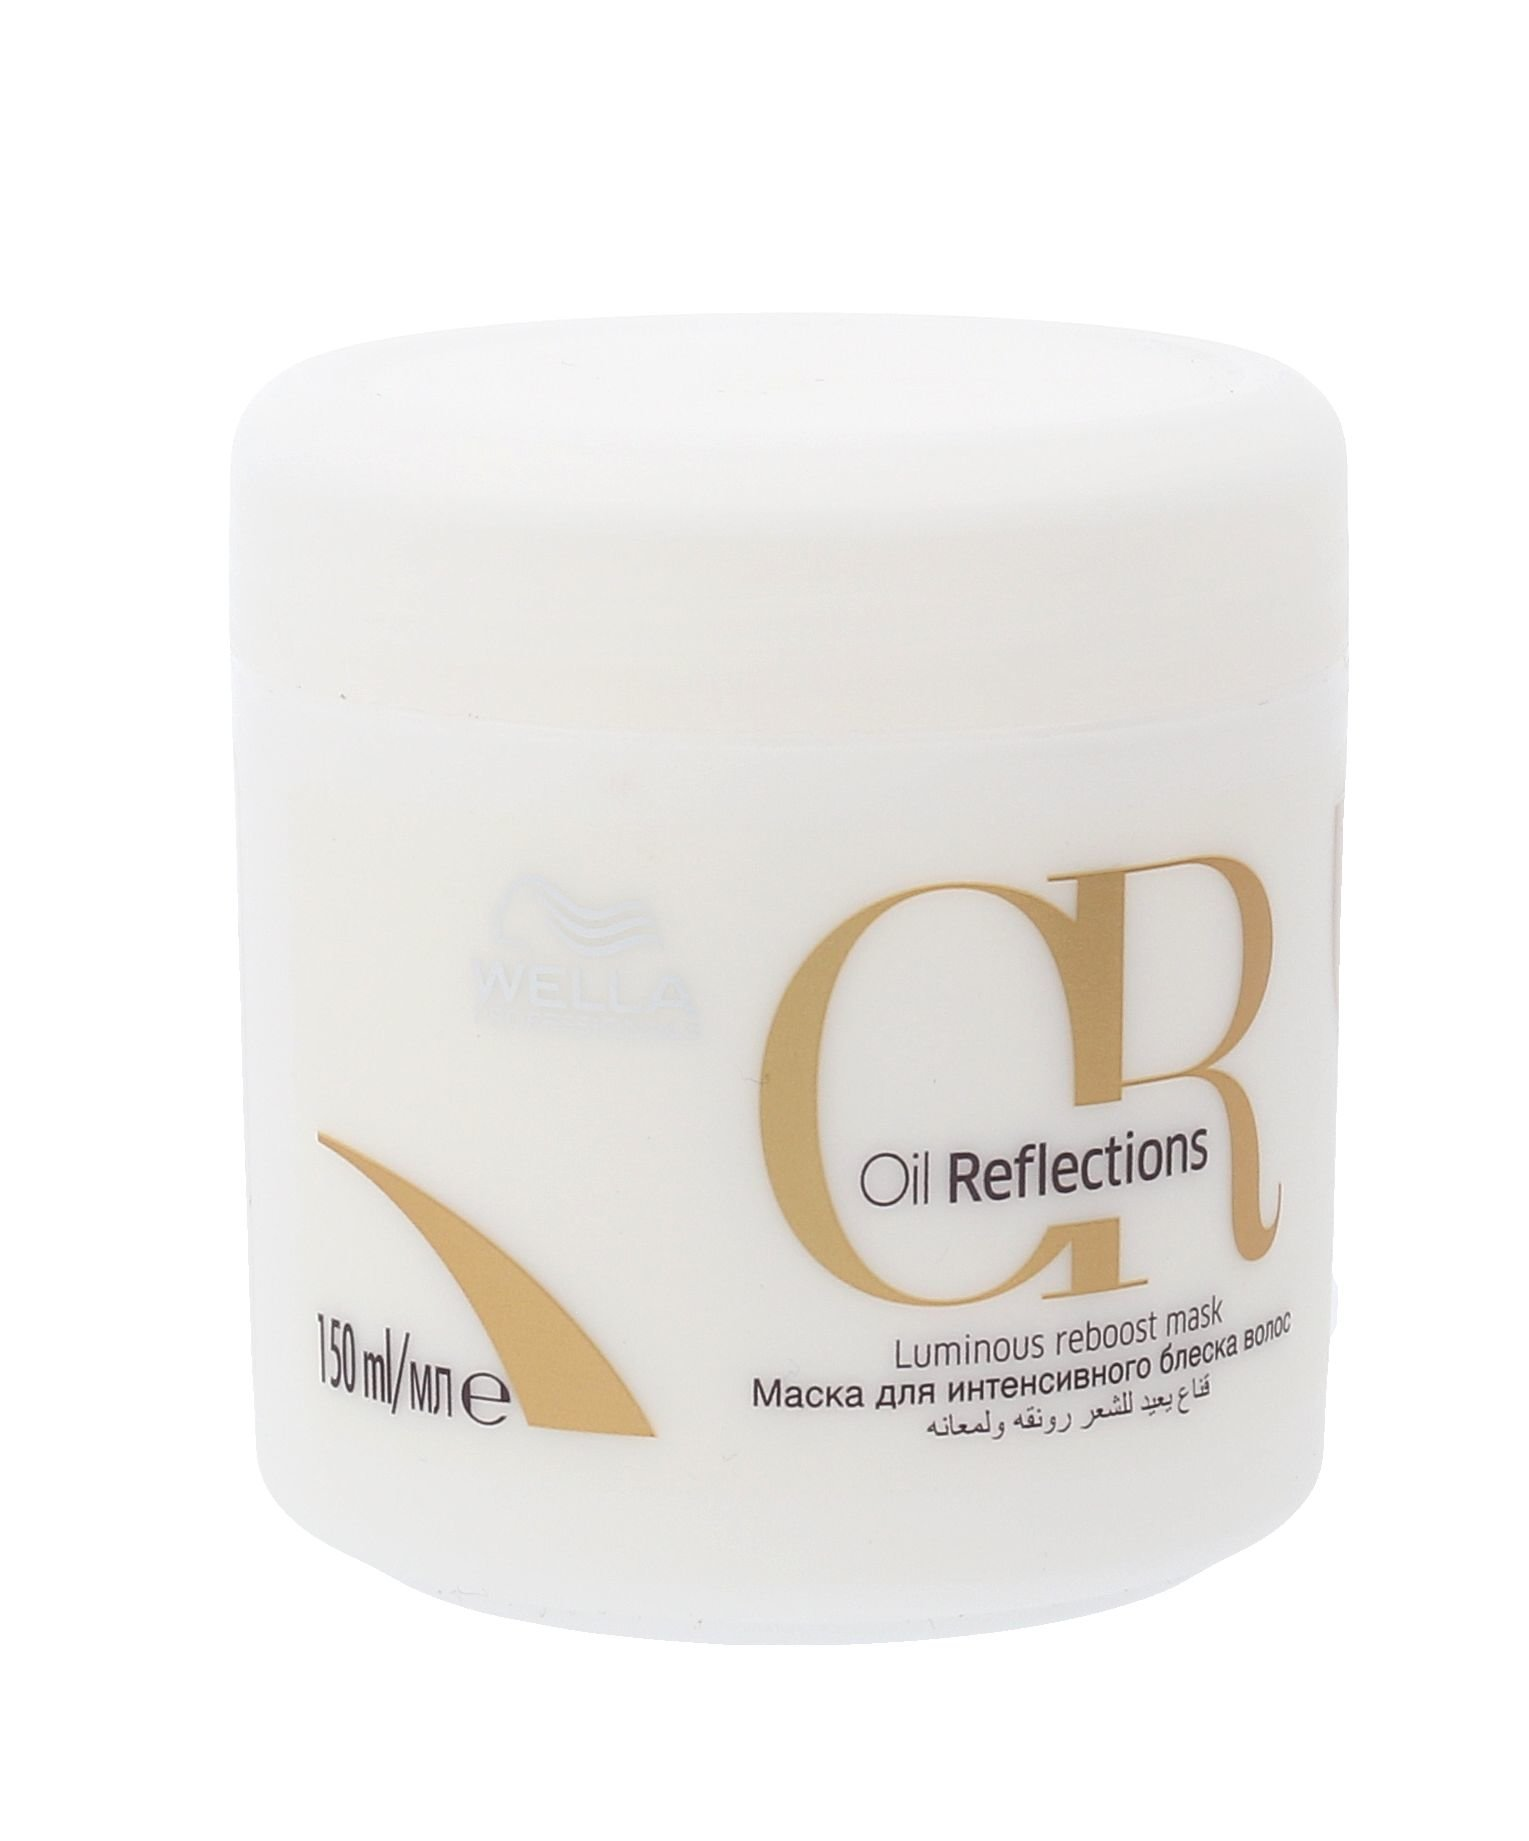 Wella Oil Reflections Luminous Reboost Mask Cosmetic 150ml